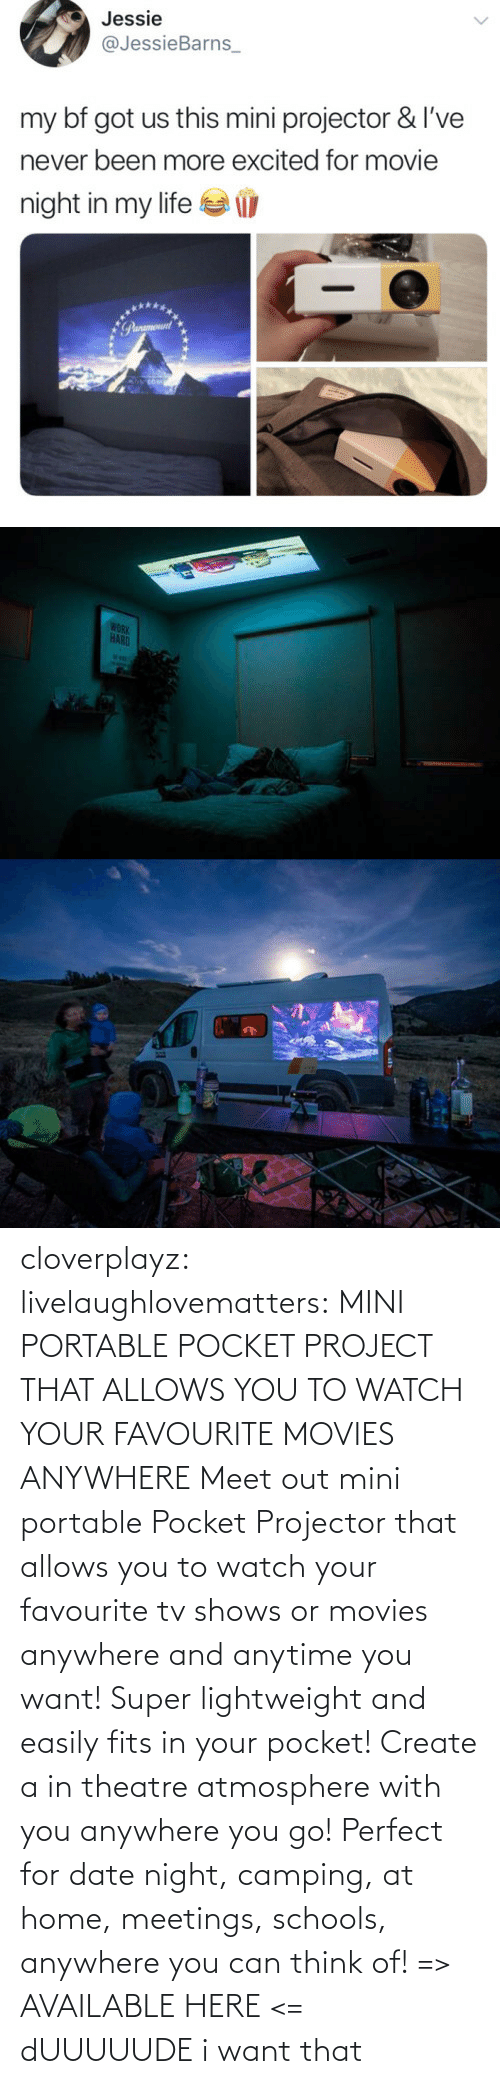 create: cloverplayz: livelaughlovematters:  MINI PORTABLE POCKET PROJECT THAT ALLOWS YOU TO WATCH YOUR FAVOURITE MOVIES ANYWHERE Meet out mini portable Pocket Projector that allows you to watch your favourite tv shows or movies anywhere and anytime you want! Super lightweight and easily fits in your pocket! Create a in theatre atmosphere with you anywhere you go! Perfect for date night, camping, at home, meetings, schools, anywhere you can think of! => AVAILABLE HERE <=  dUUUUUDE i want that